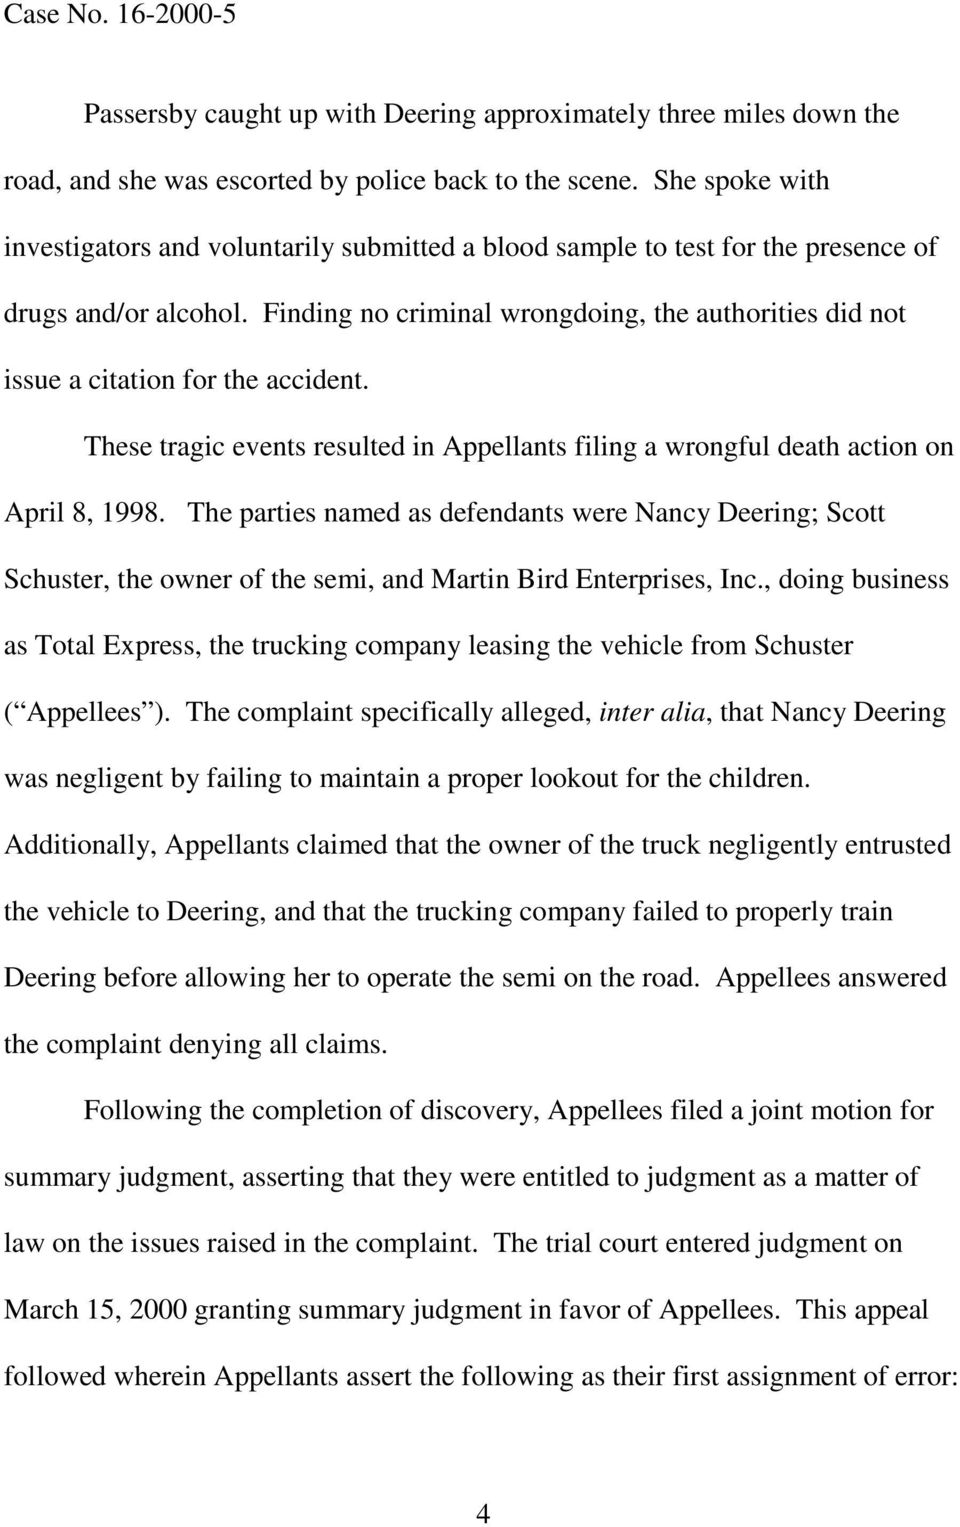 Finding no criminal wrongdoing, the authorities did not issue a citation for the accident. These tragic events resulted in Appellants filing a wrongful death action on April 8, 1998.